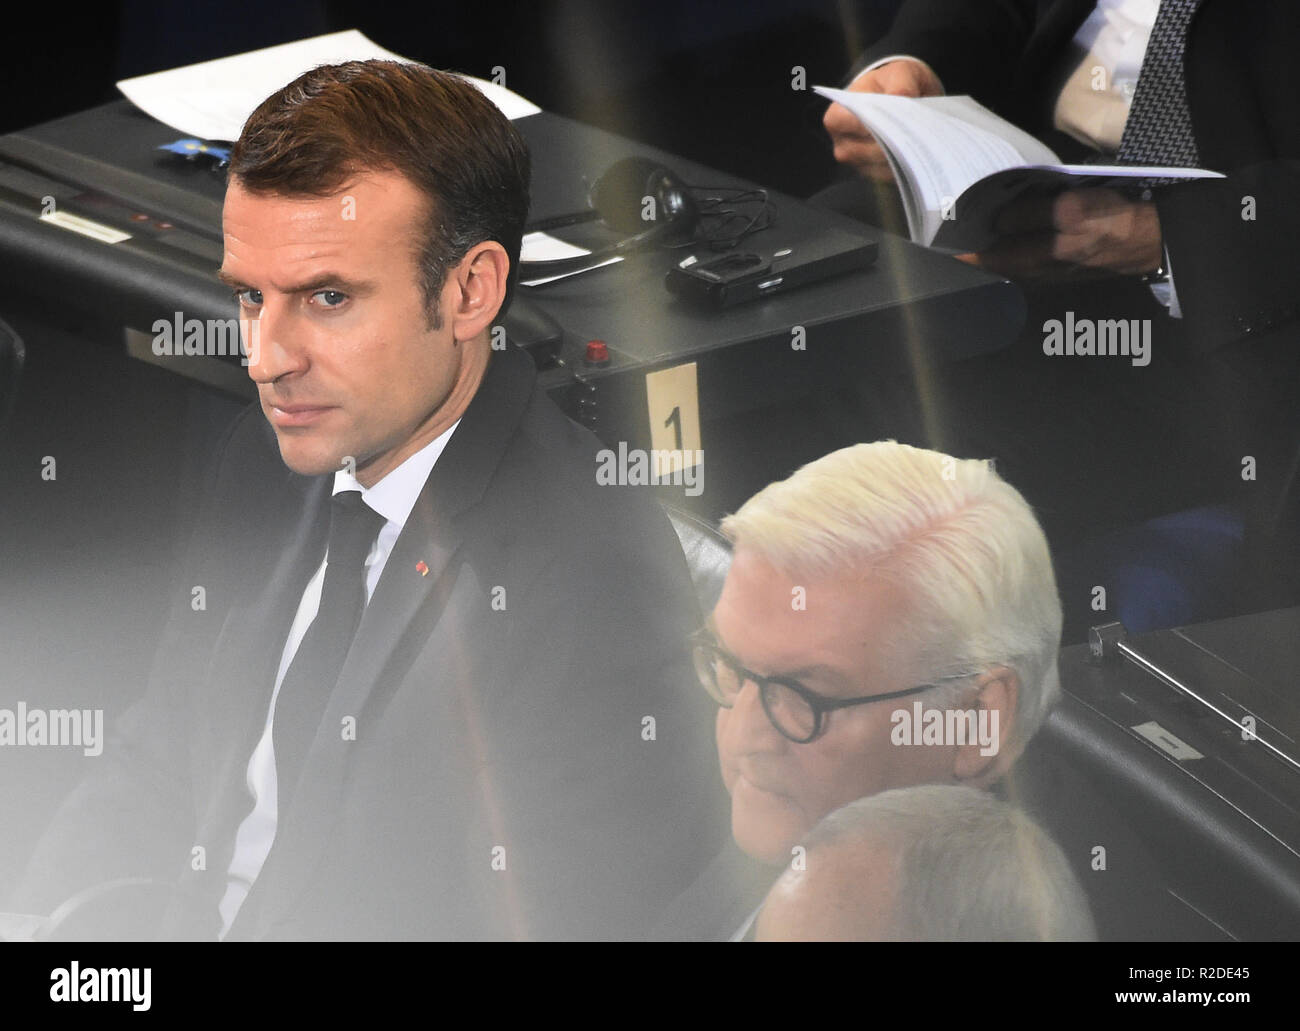 Berlin, Germany. 18th Nov, 2018. French President Emmanuel Macron participates in the Bundestag's central commemoration ceremony for the National Day of Remembrance. Right Federal President Frank-Walter Steinmeier. Credit: Gregor Fischer/dpa/Alamy Live News Stock Photo